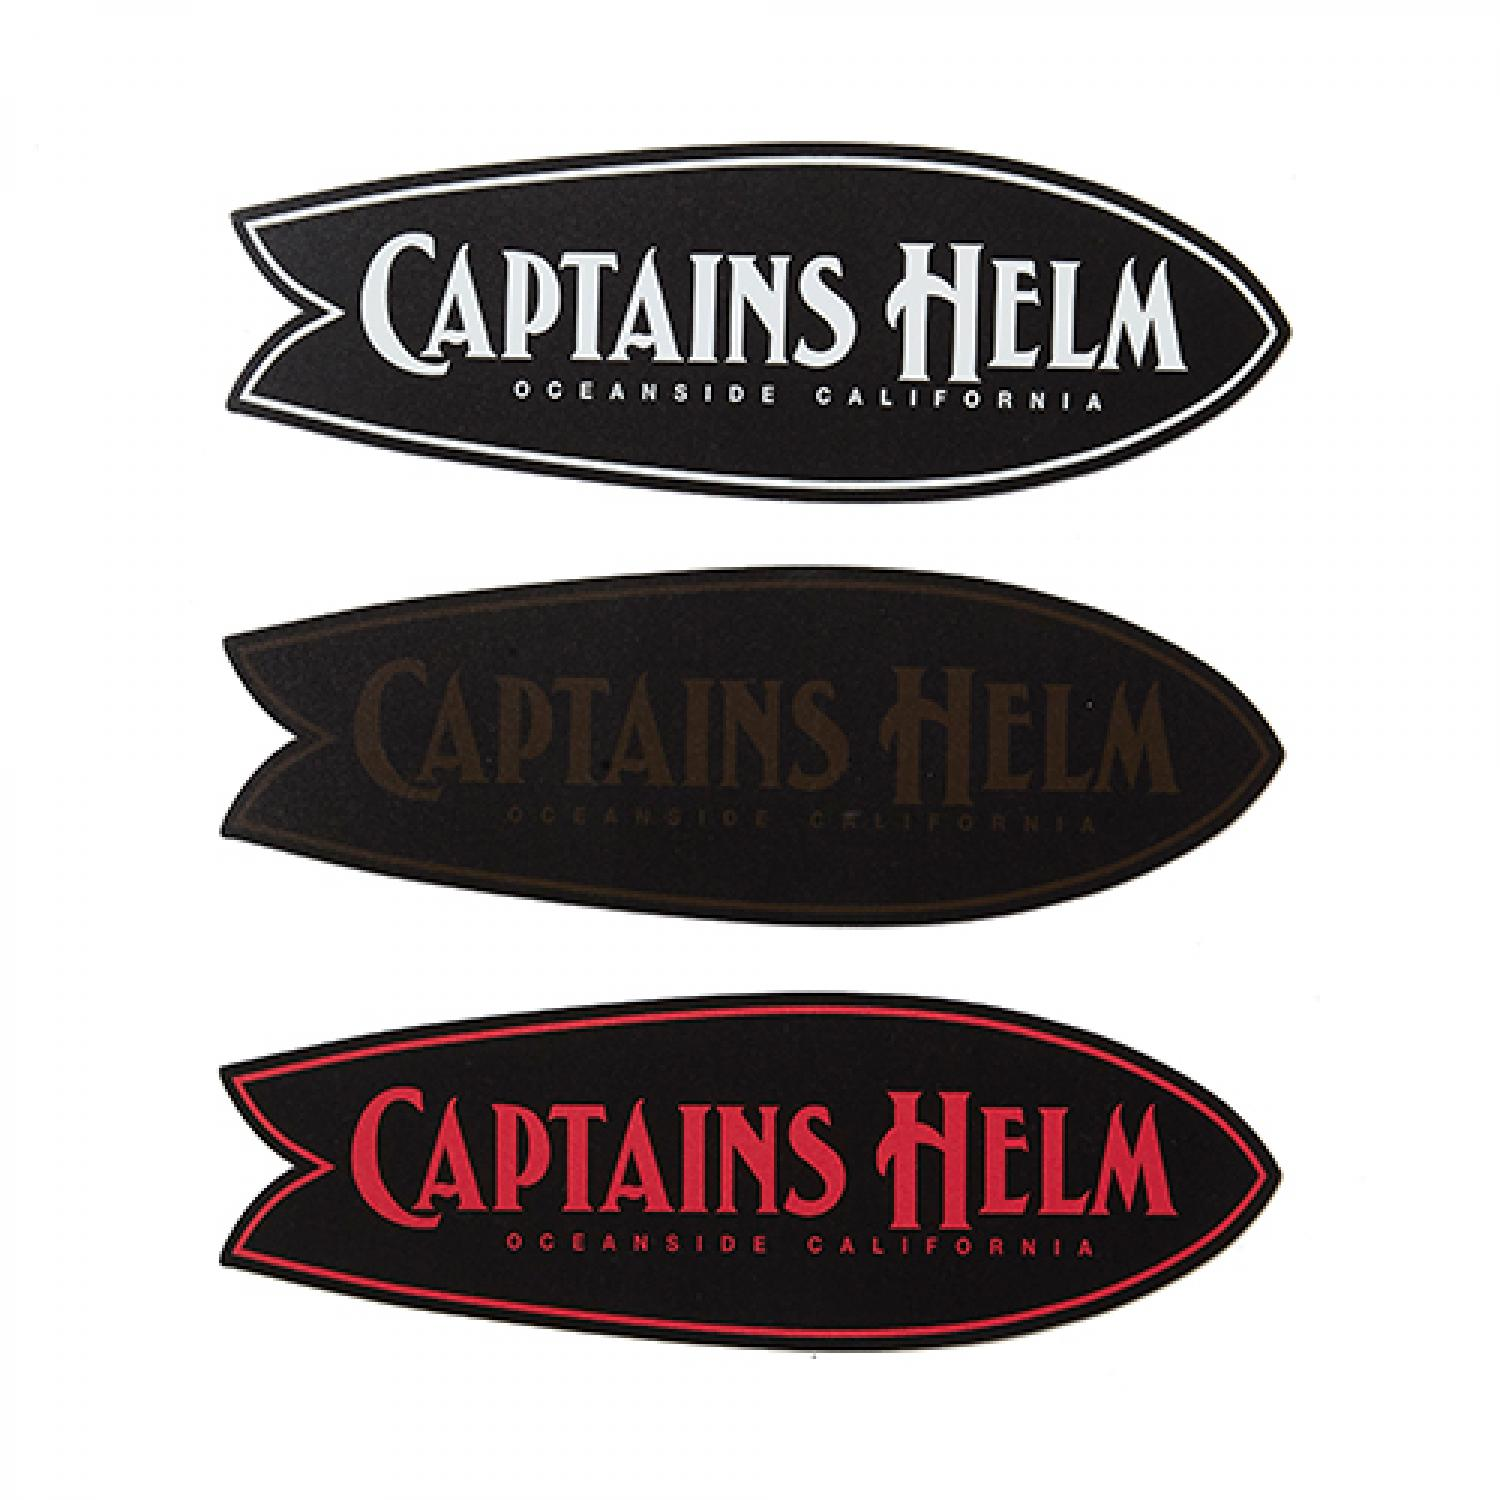 CAPTAINS HELM FISH MAGNET STICKER